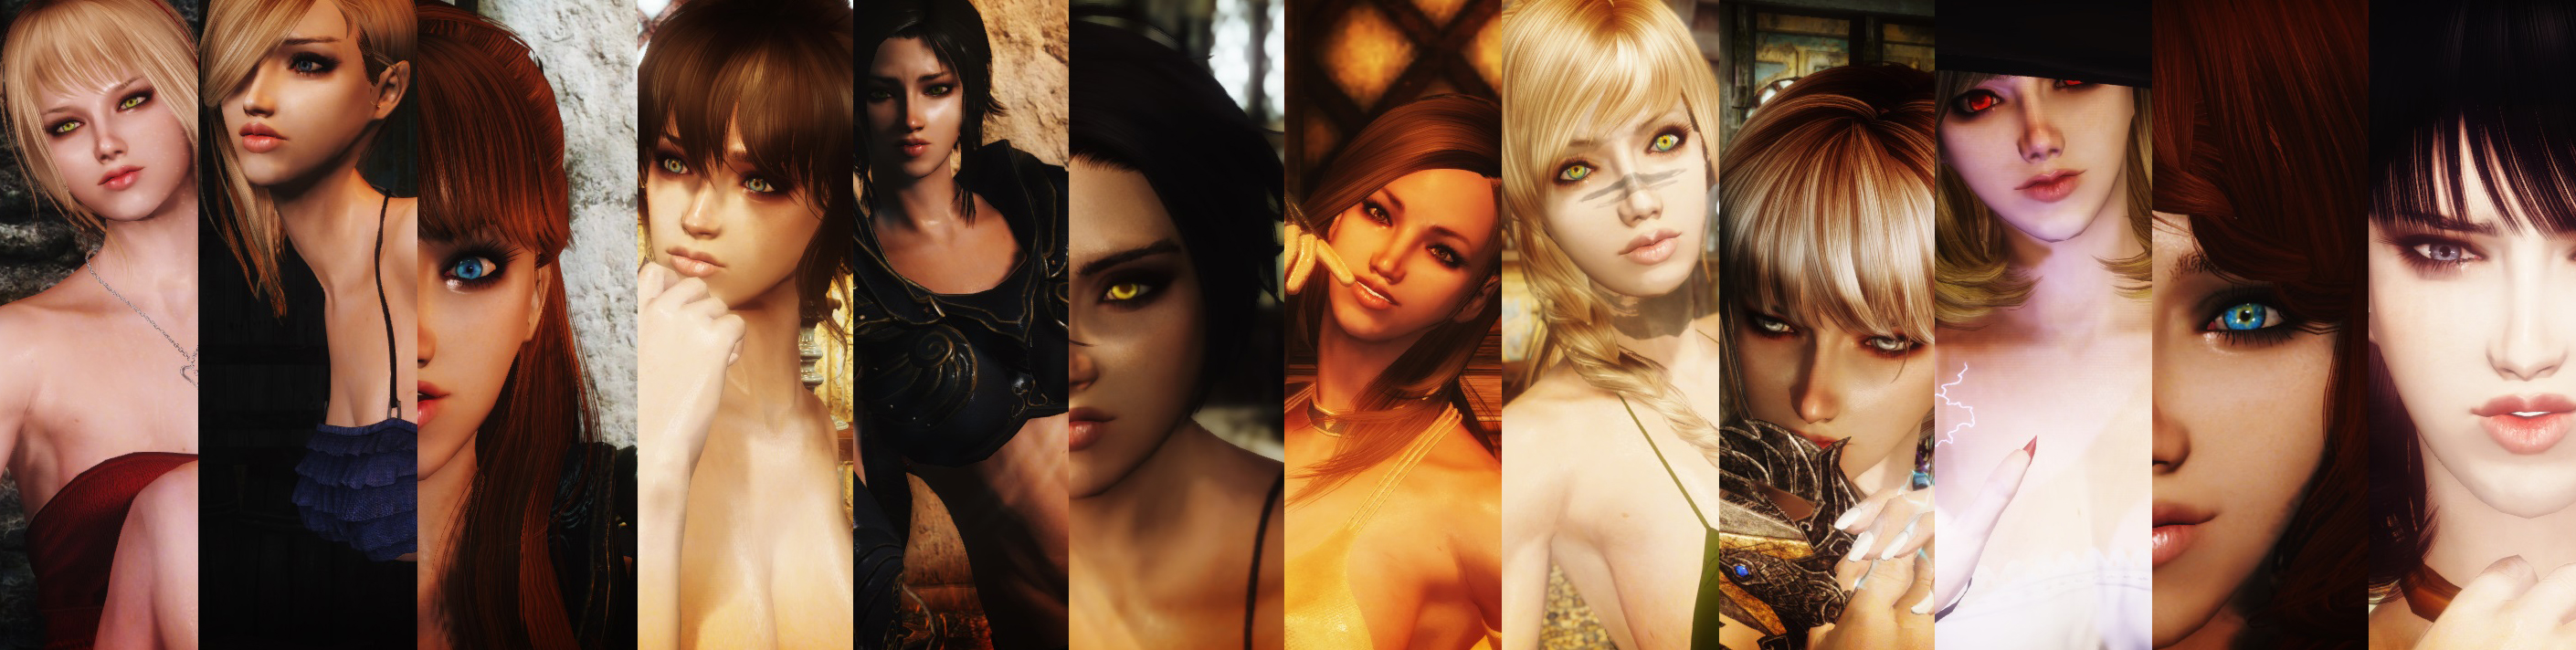 The Women of Skyrim